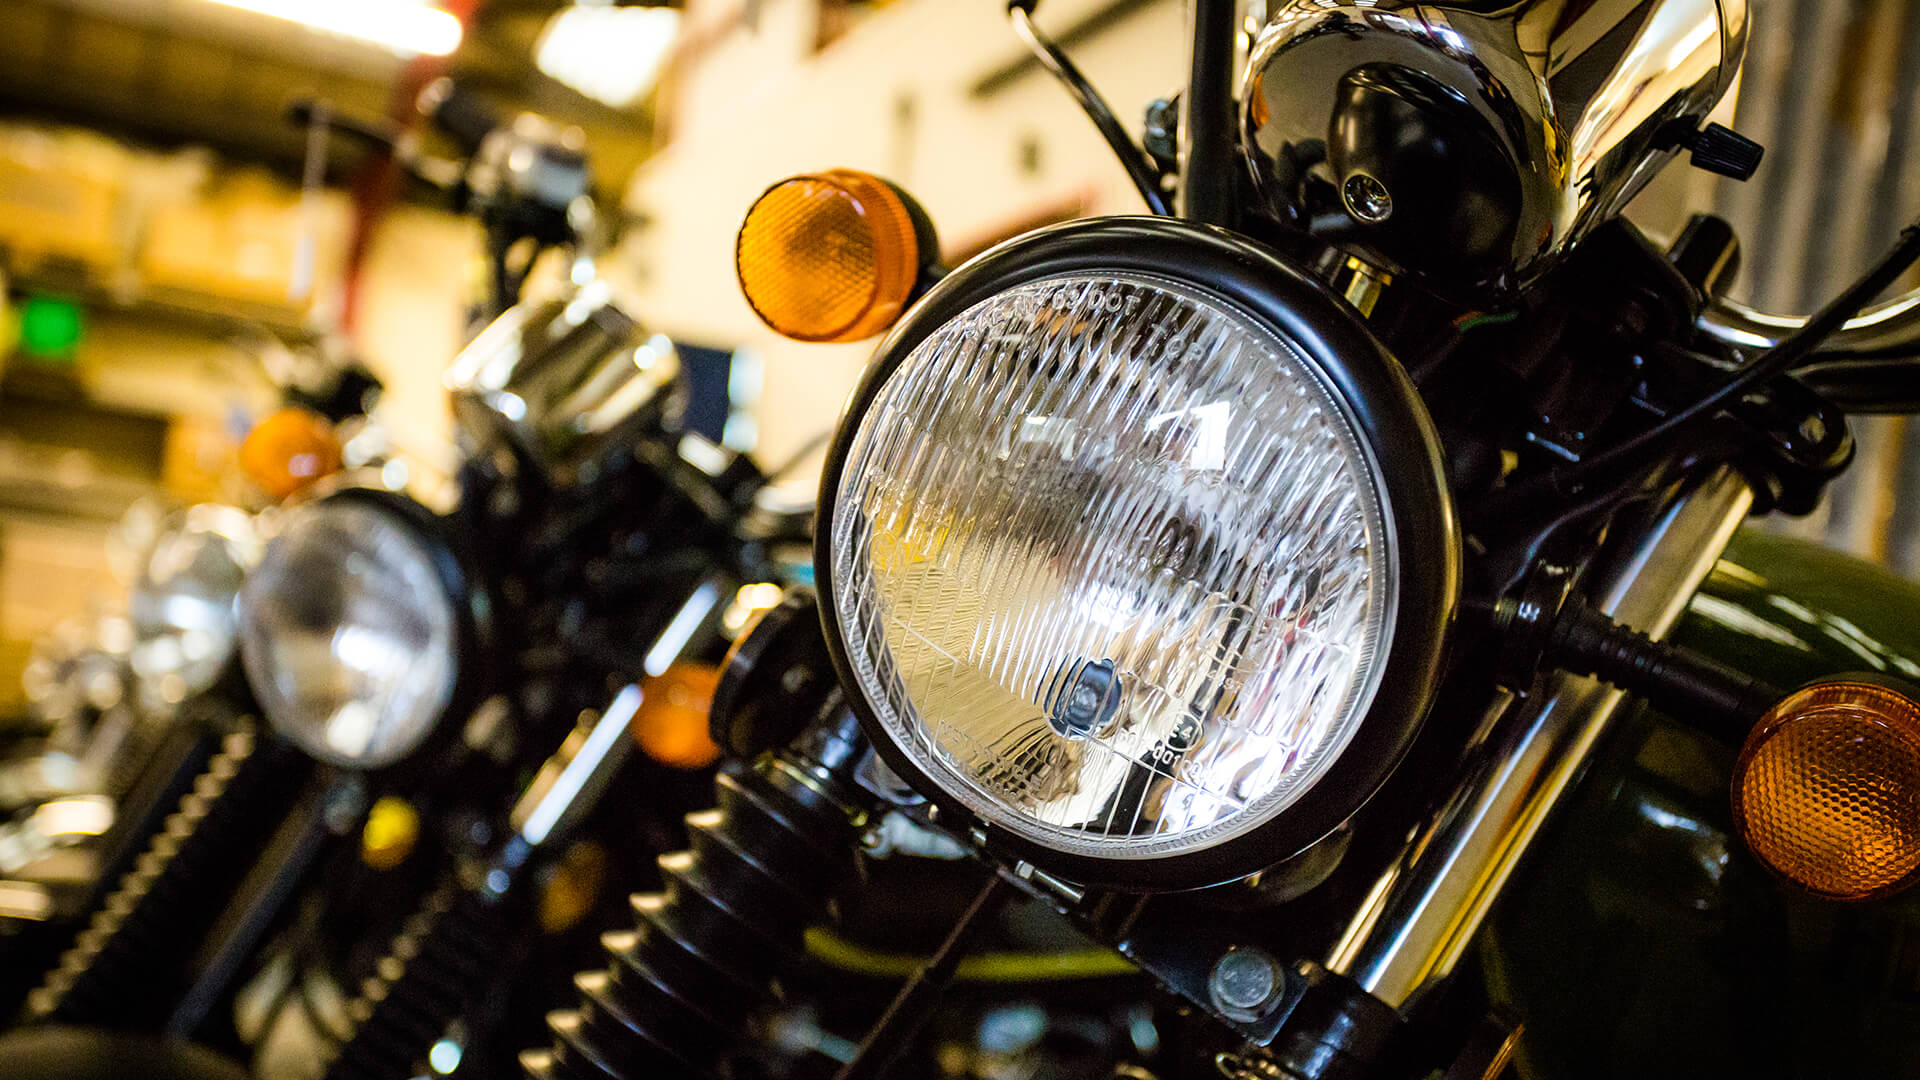 Herald motorcycle light